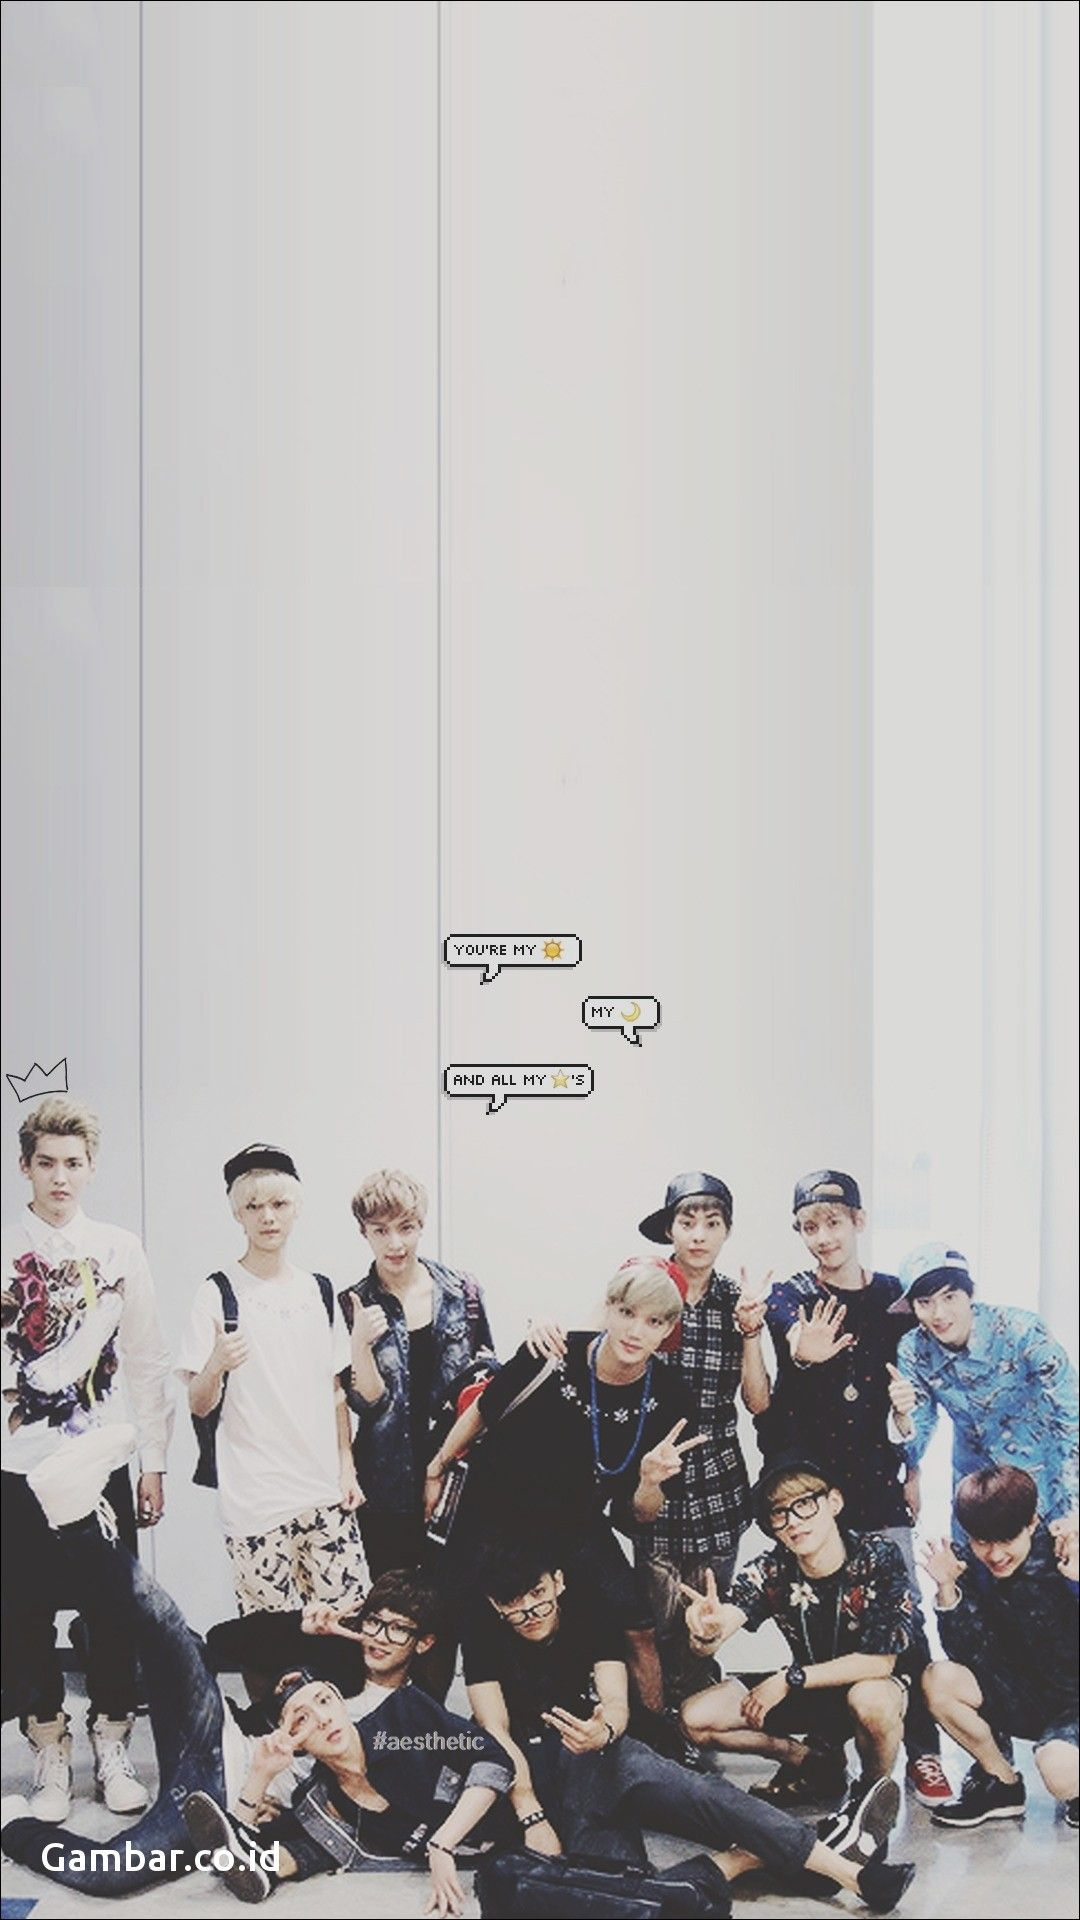 Exo Aesthetic Wallpapers Top Free Exo Aesthetic Backgrounds Wallpaperaccess